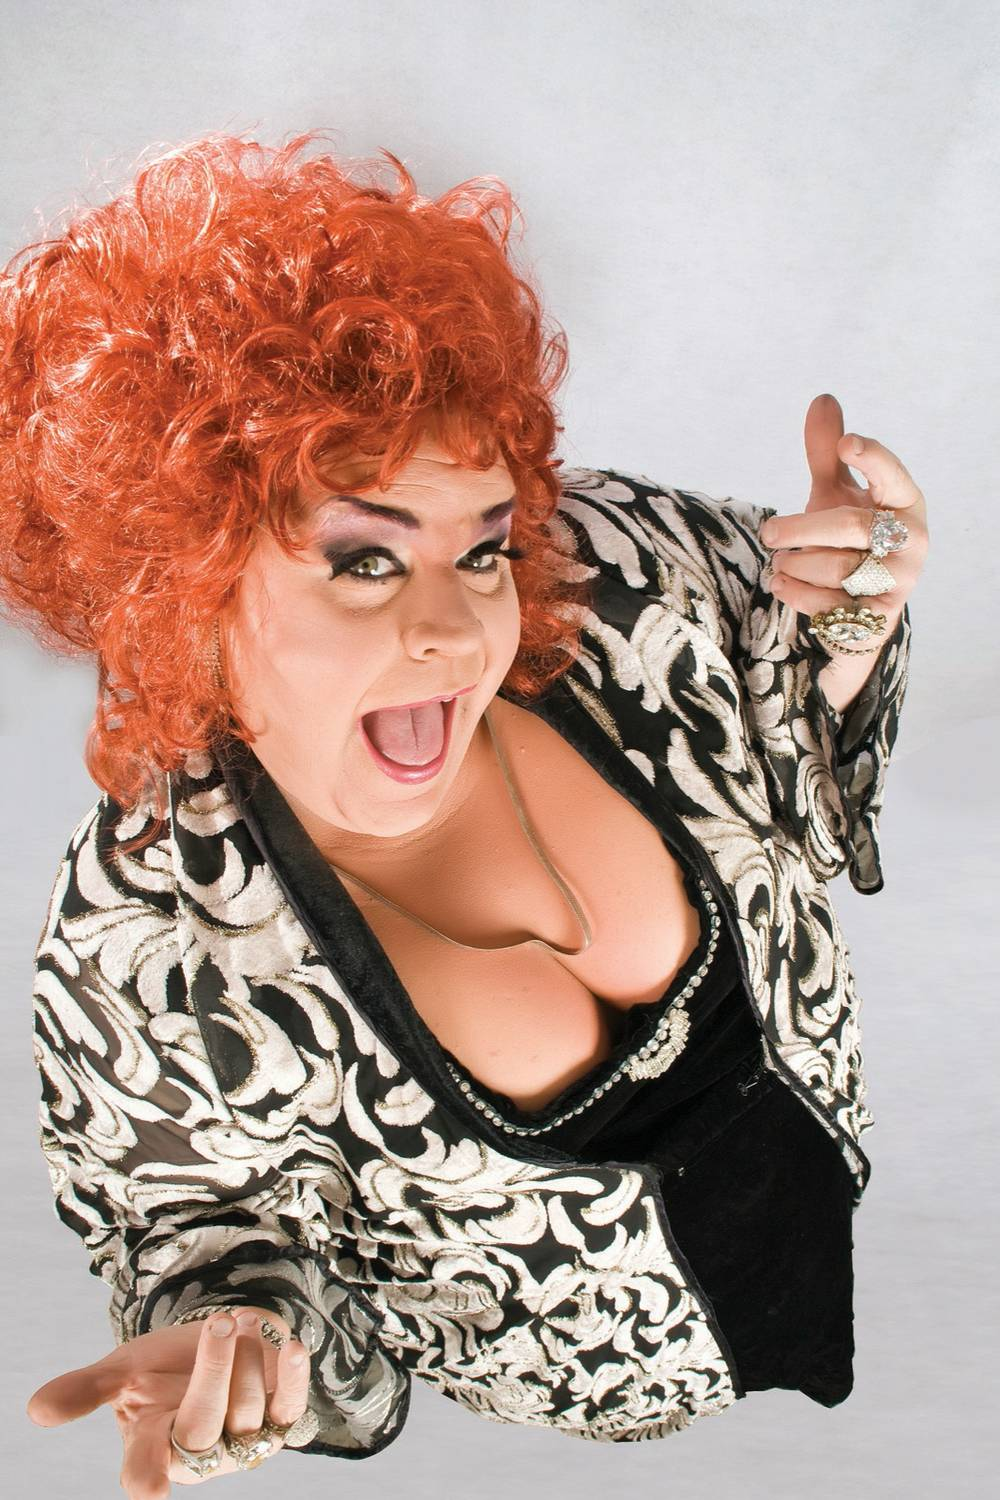 renowned chef and comedian drag queen Perhaps one of the uk's most famous gay men, never mind tv presenters, norton has many chat shows under his belt, including so graham norton, v graham norton and the graham norton show.